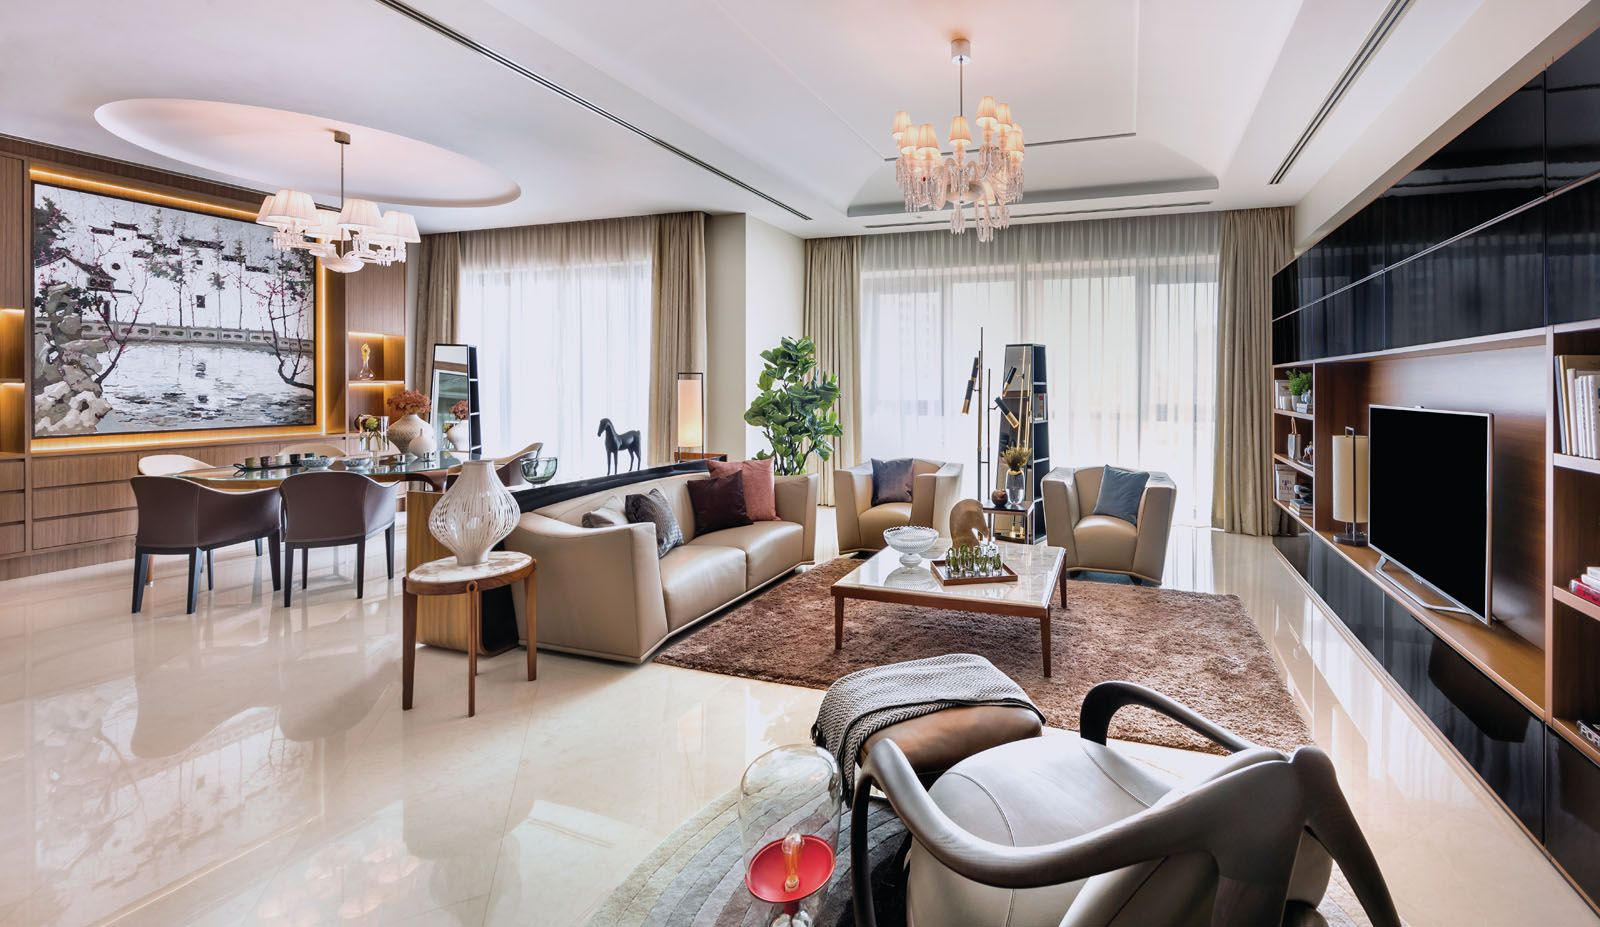 Open-concept home with modern furniture and large Oriental Chinese decor pieces with accent lighting